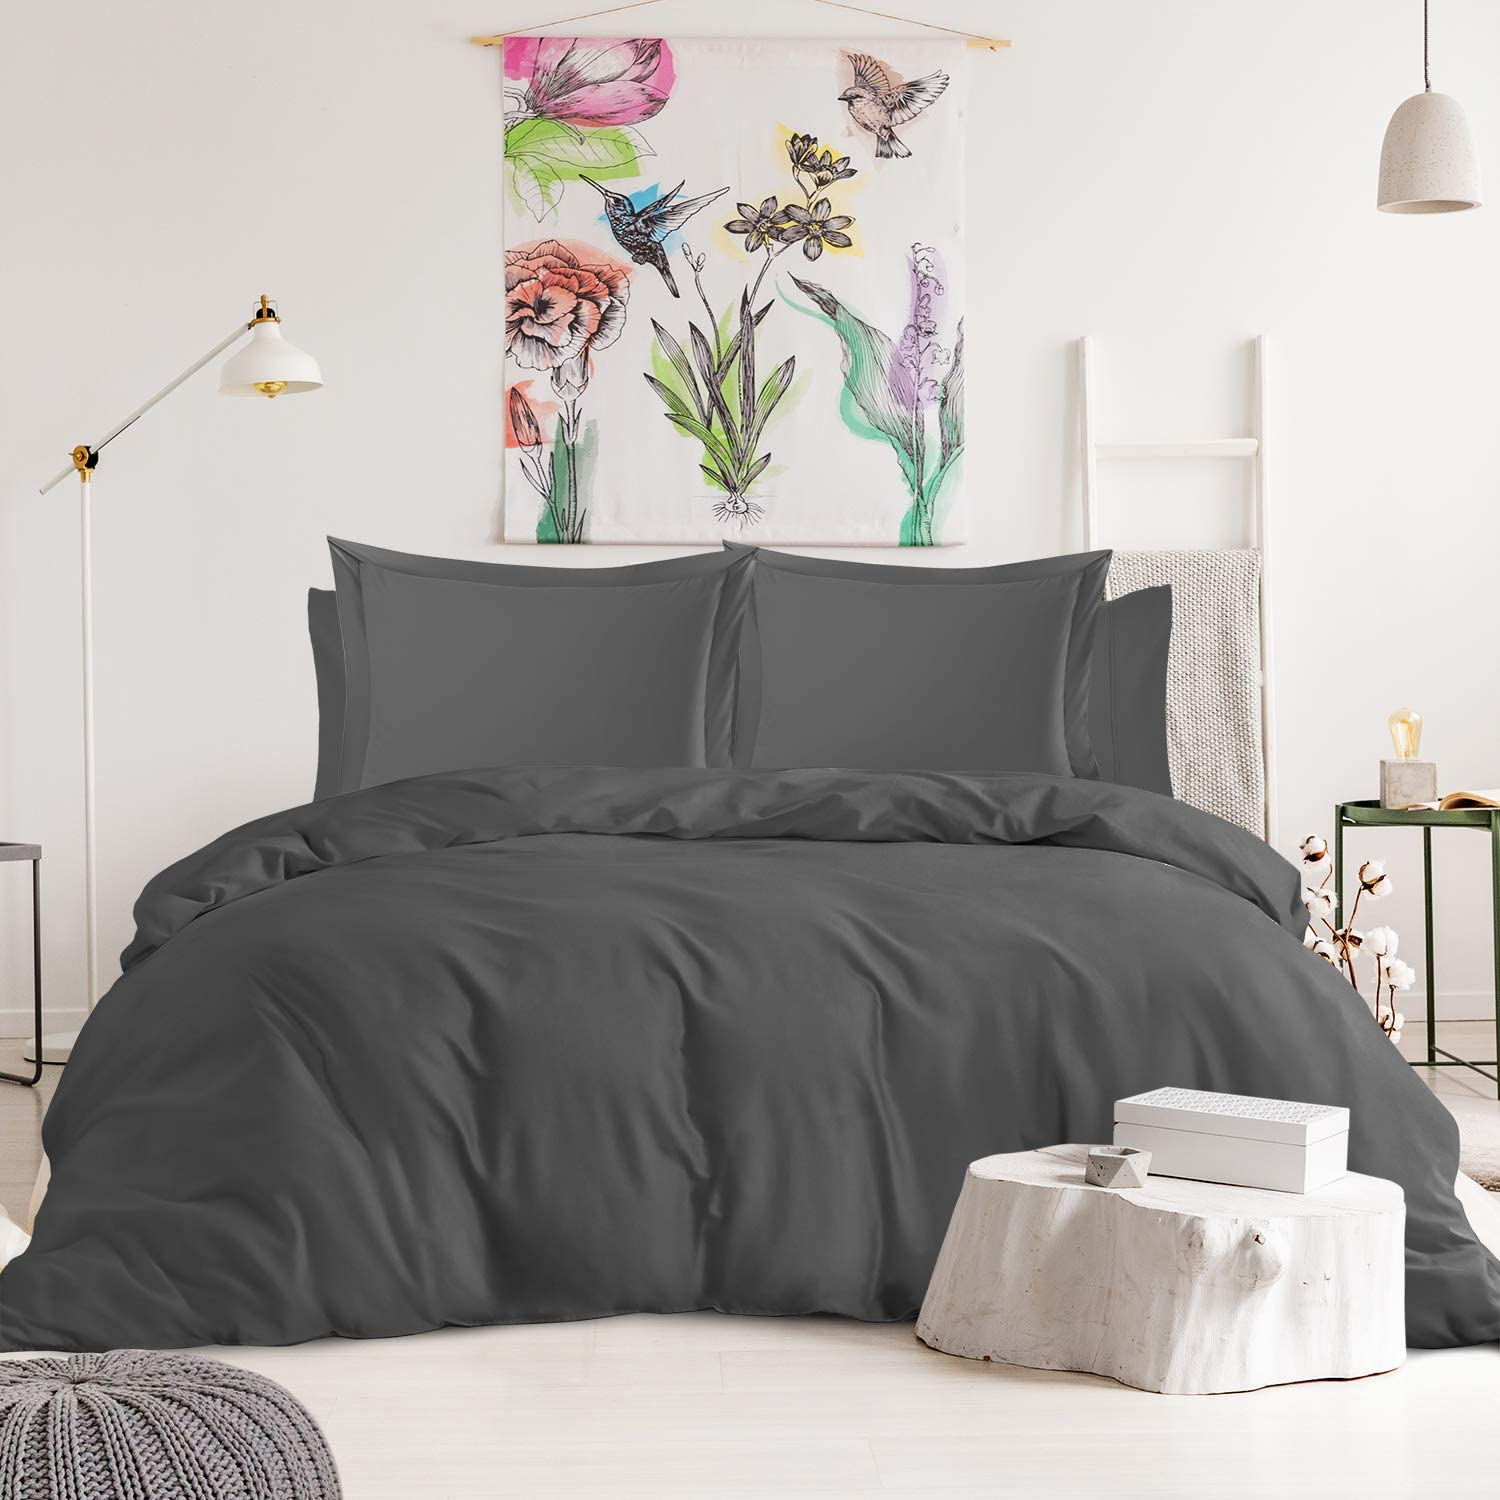 Nestl Dealing full price reduction Bedding Duvet Cover 6-Piece Set Count High - Sheets Thread Max 84% OFF